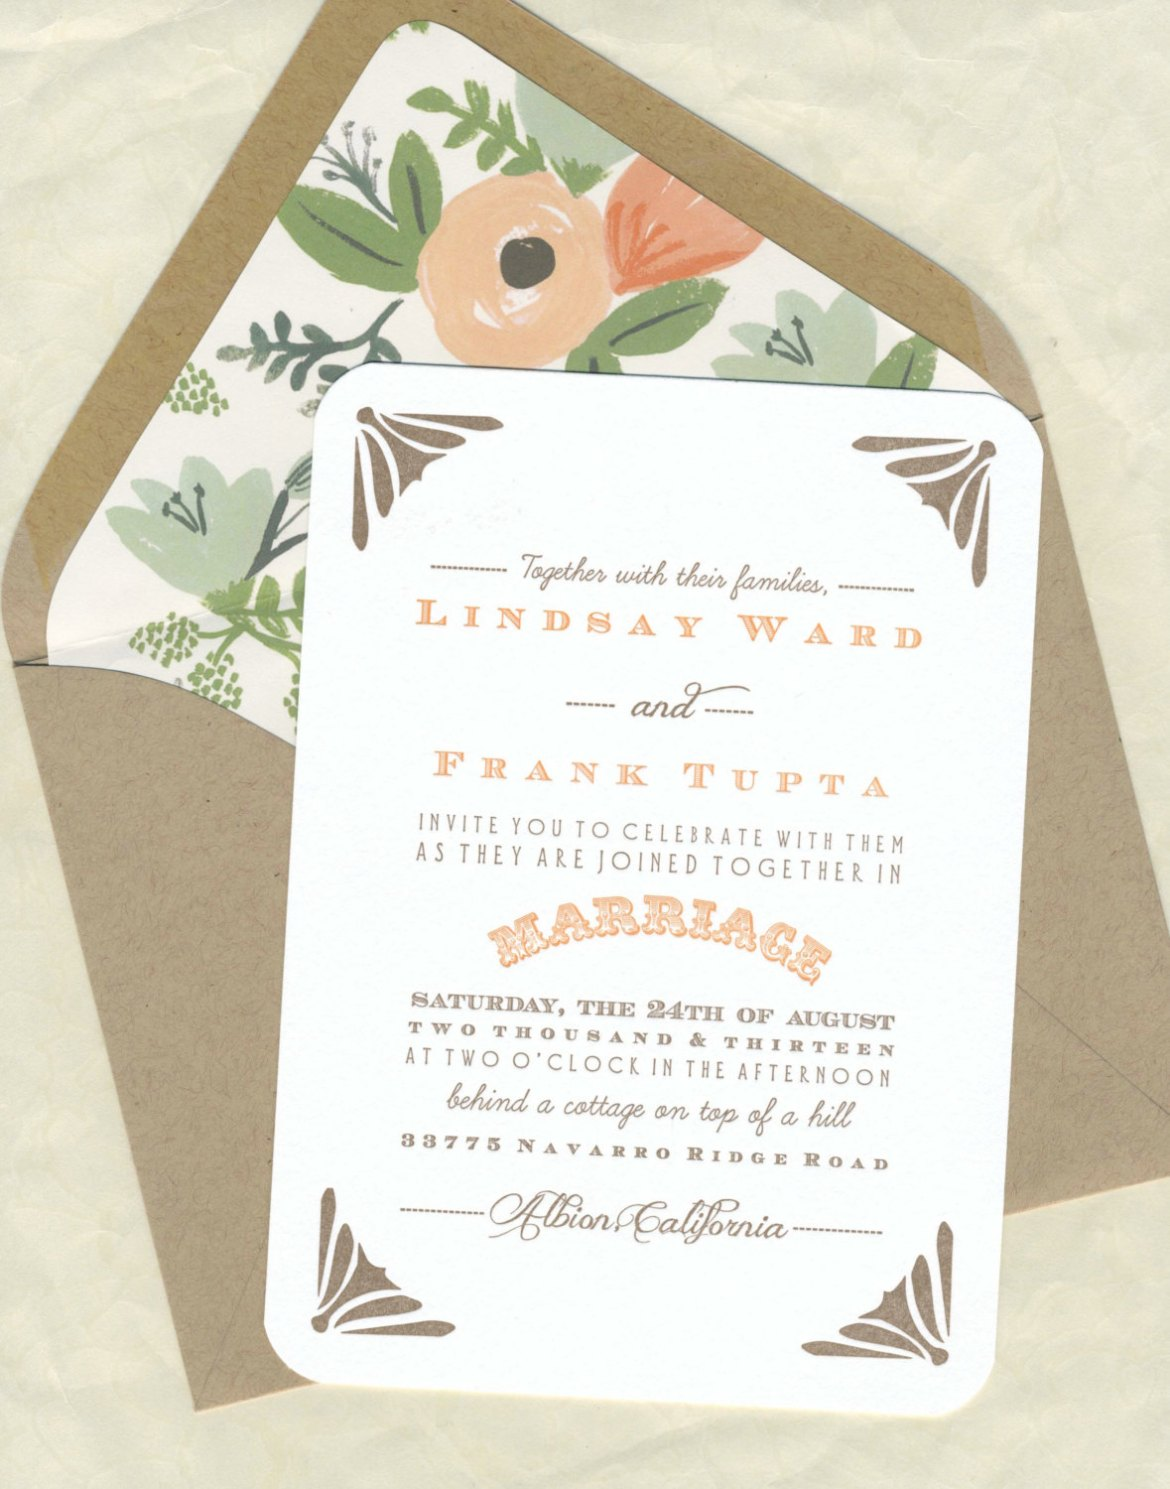 library card save the dates, custom map invitations, wedding invites and more from Foreword Press + Design